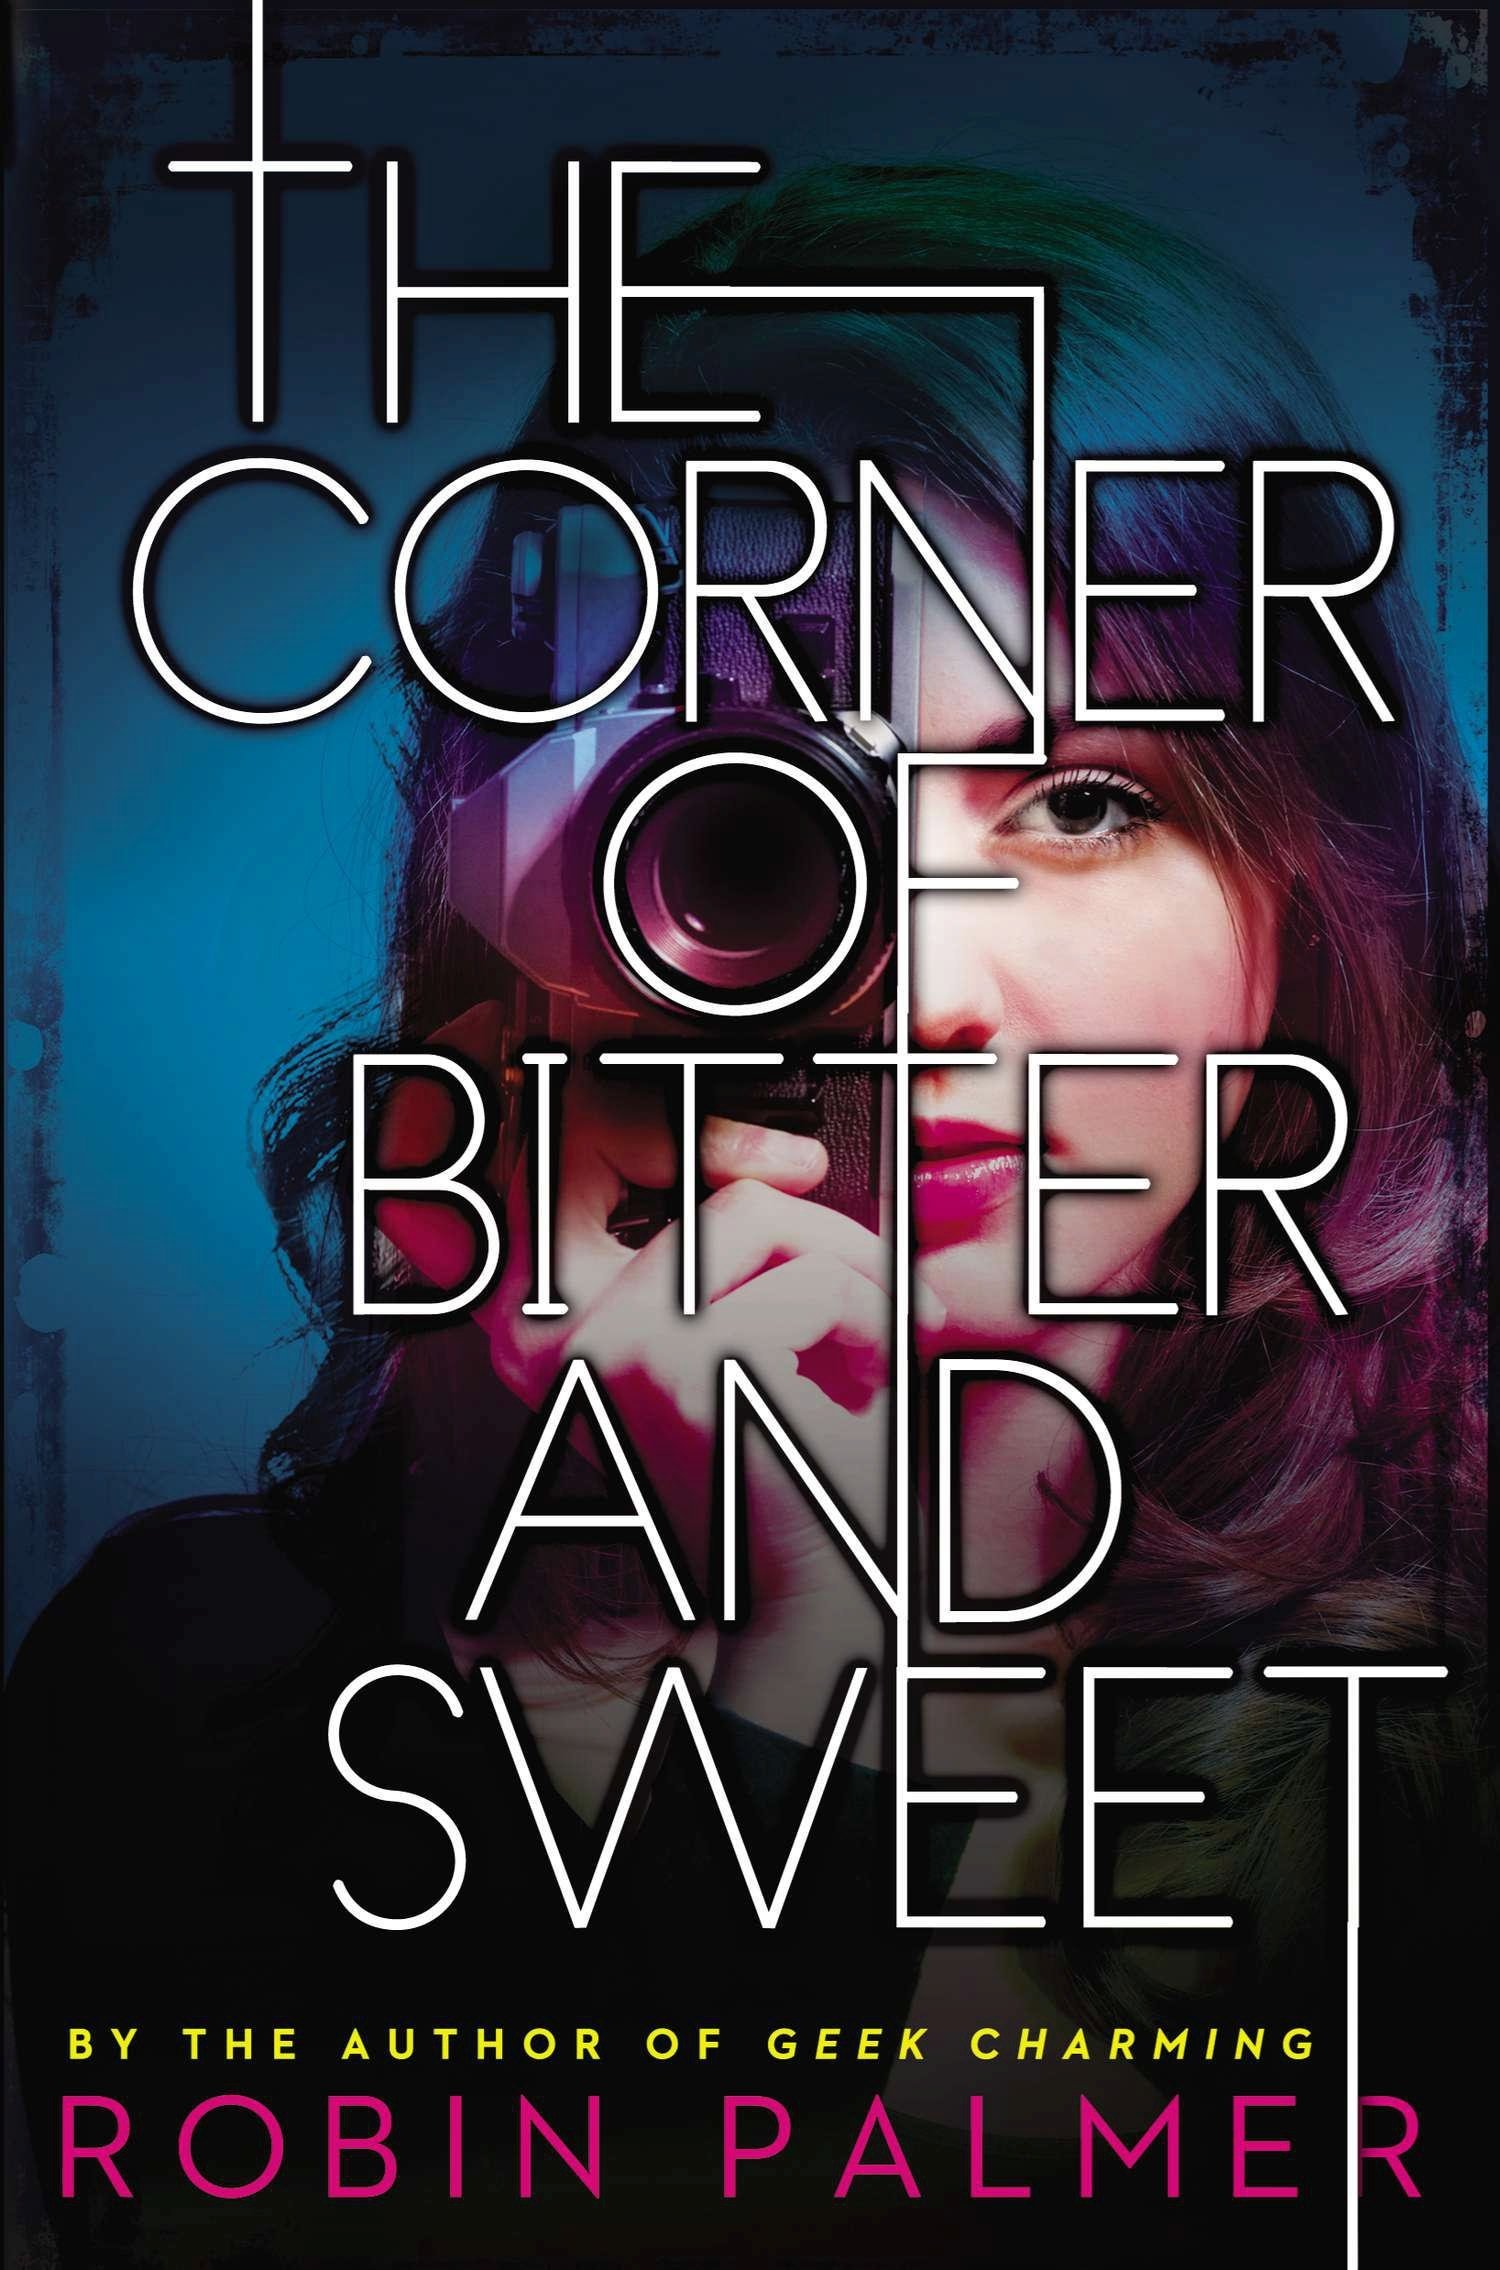 The Corner of Bitter and Sweet, by Robin Palmer